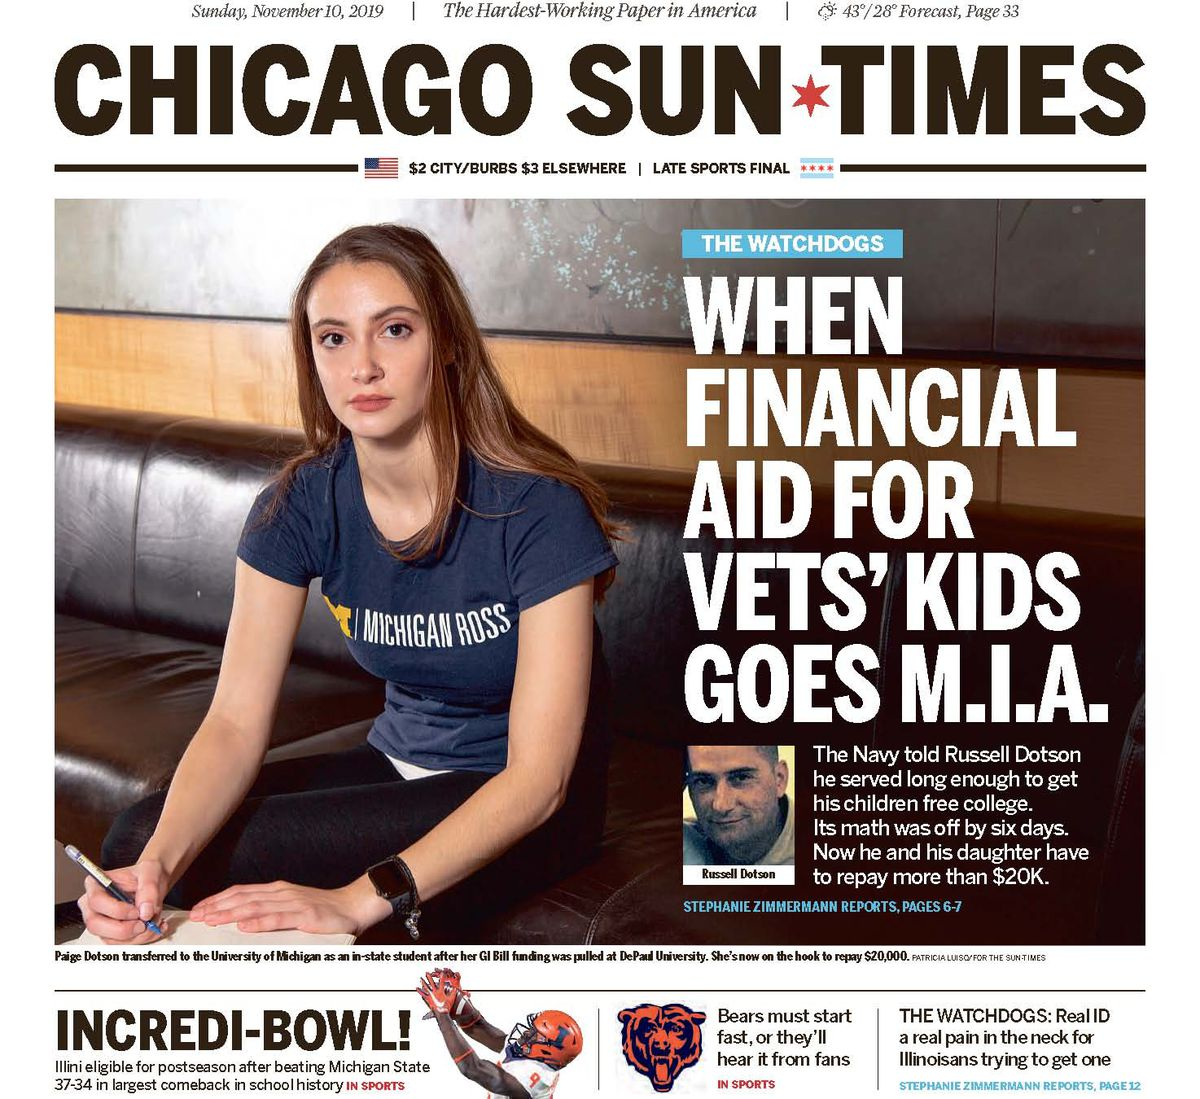 A Chicago Sun-Times investigation helped get Paige Dotson's debt waived and her educational benefit restored.